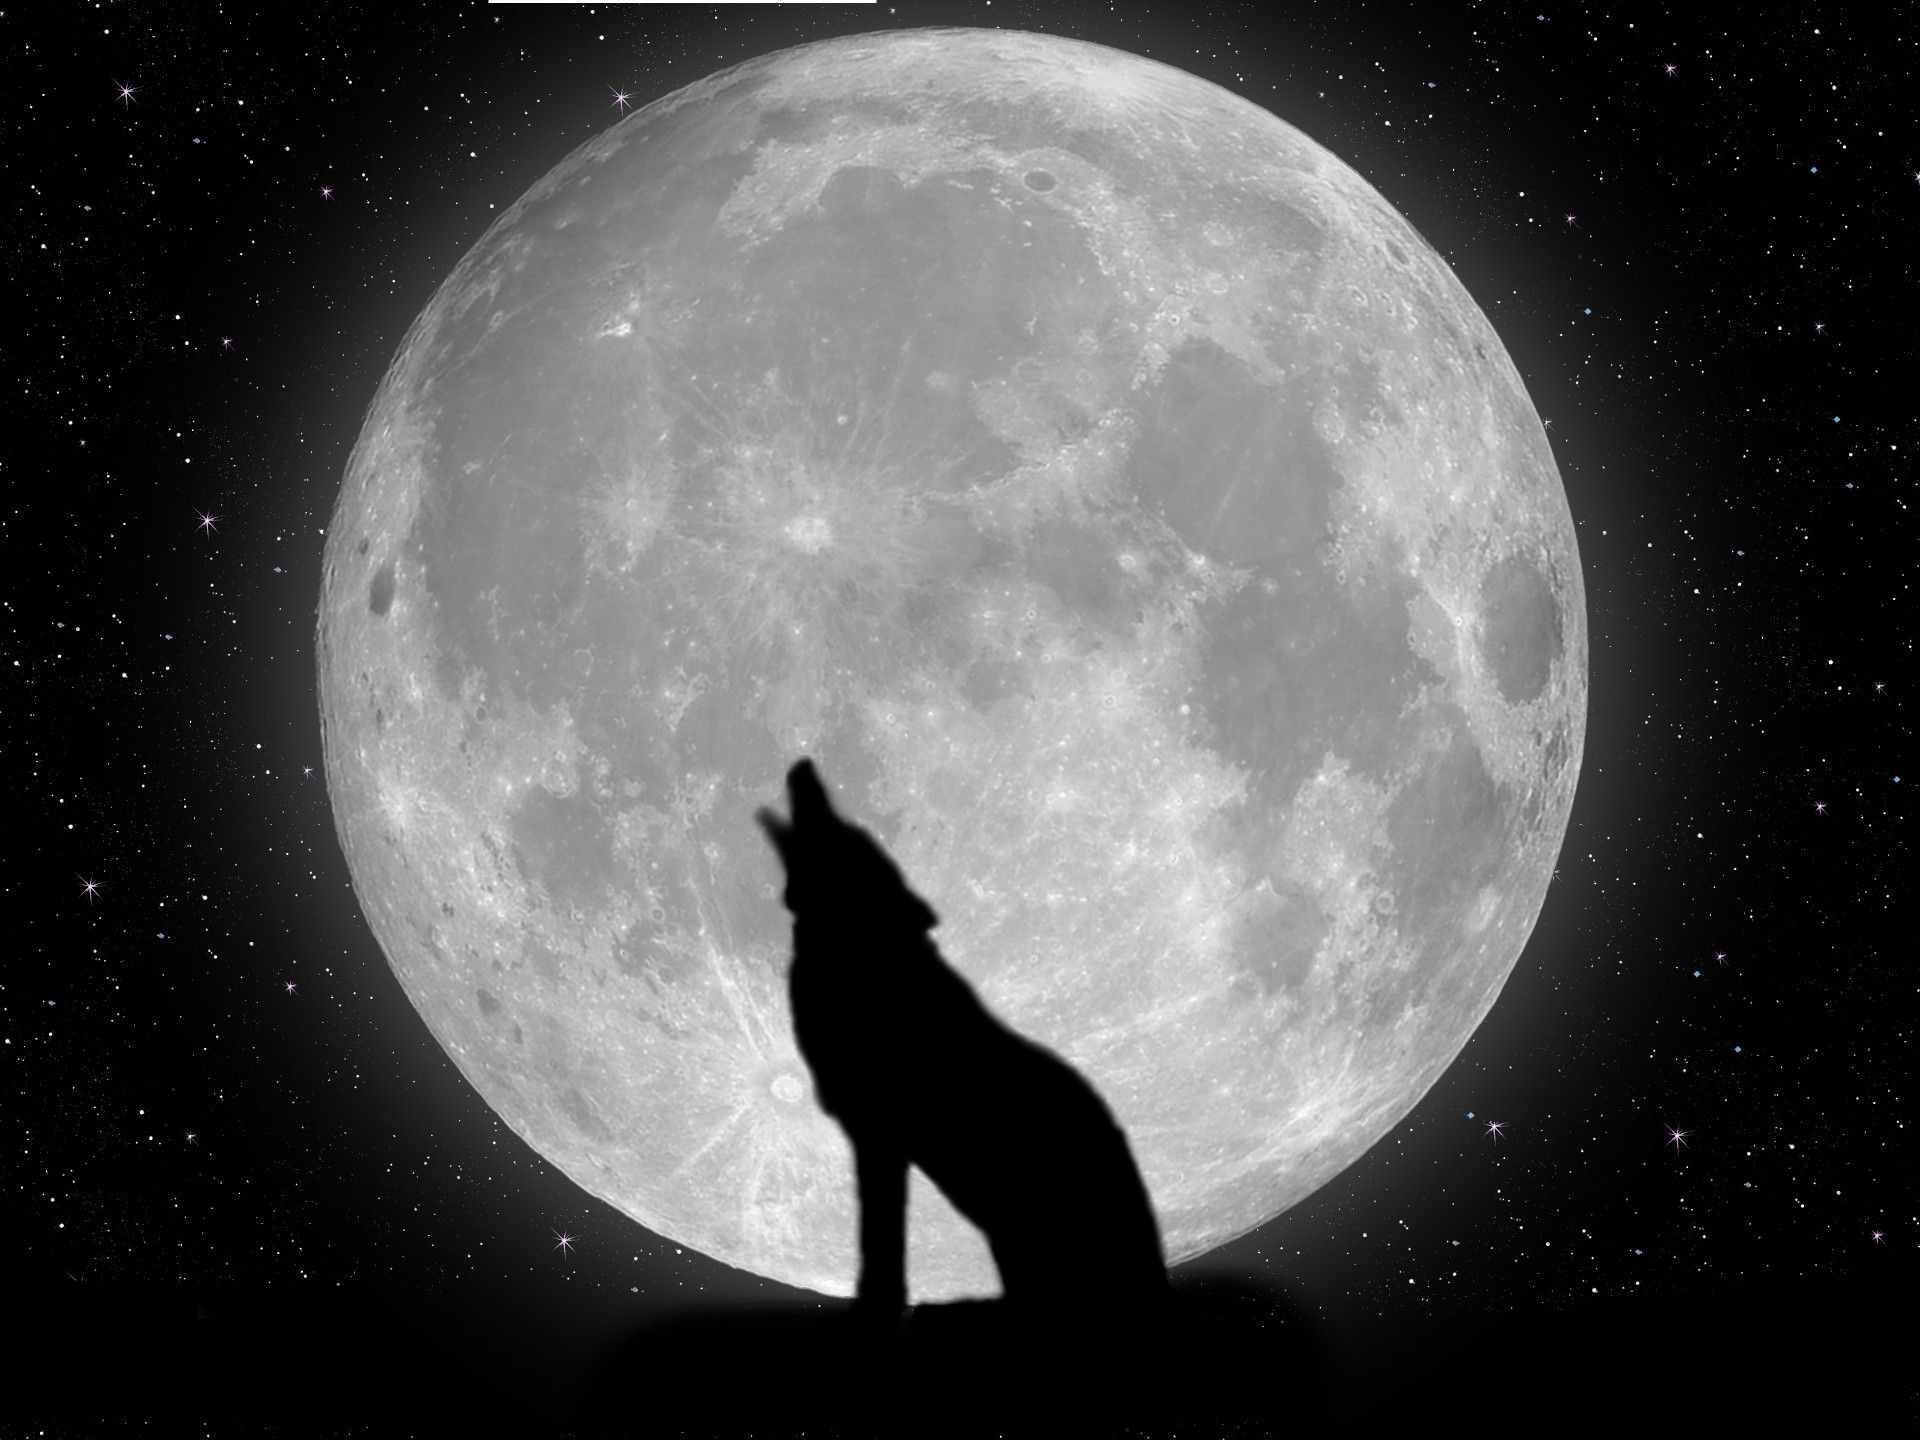 free moving wolf wallpaper | Wallpapers – HD Desktop Wallpapers Free Online  | Desktop Wallpapers | Pinterest | Wolf wallpaper, Wolf and Wallpaper